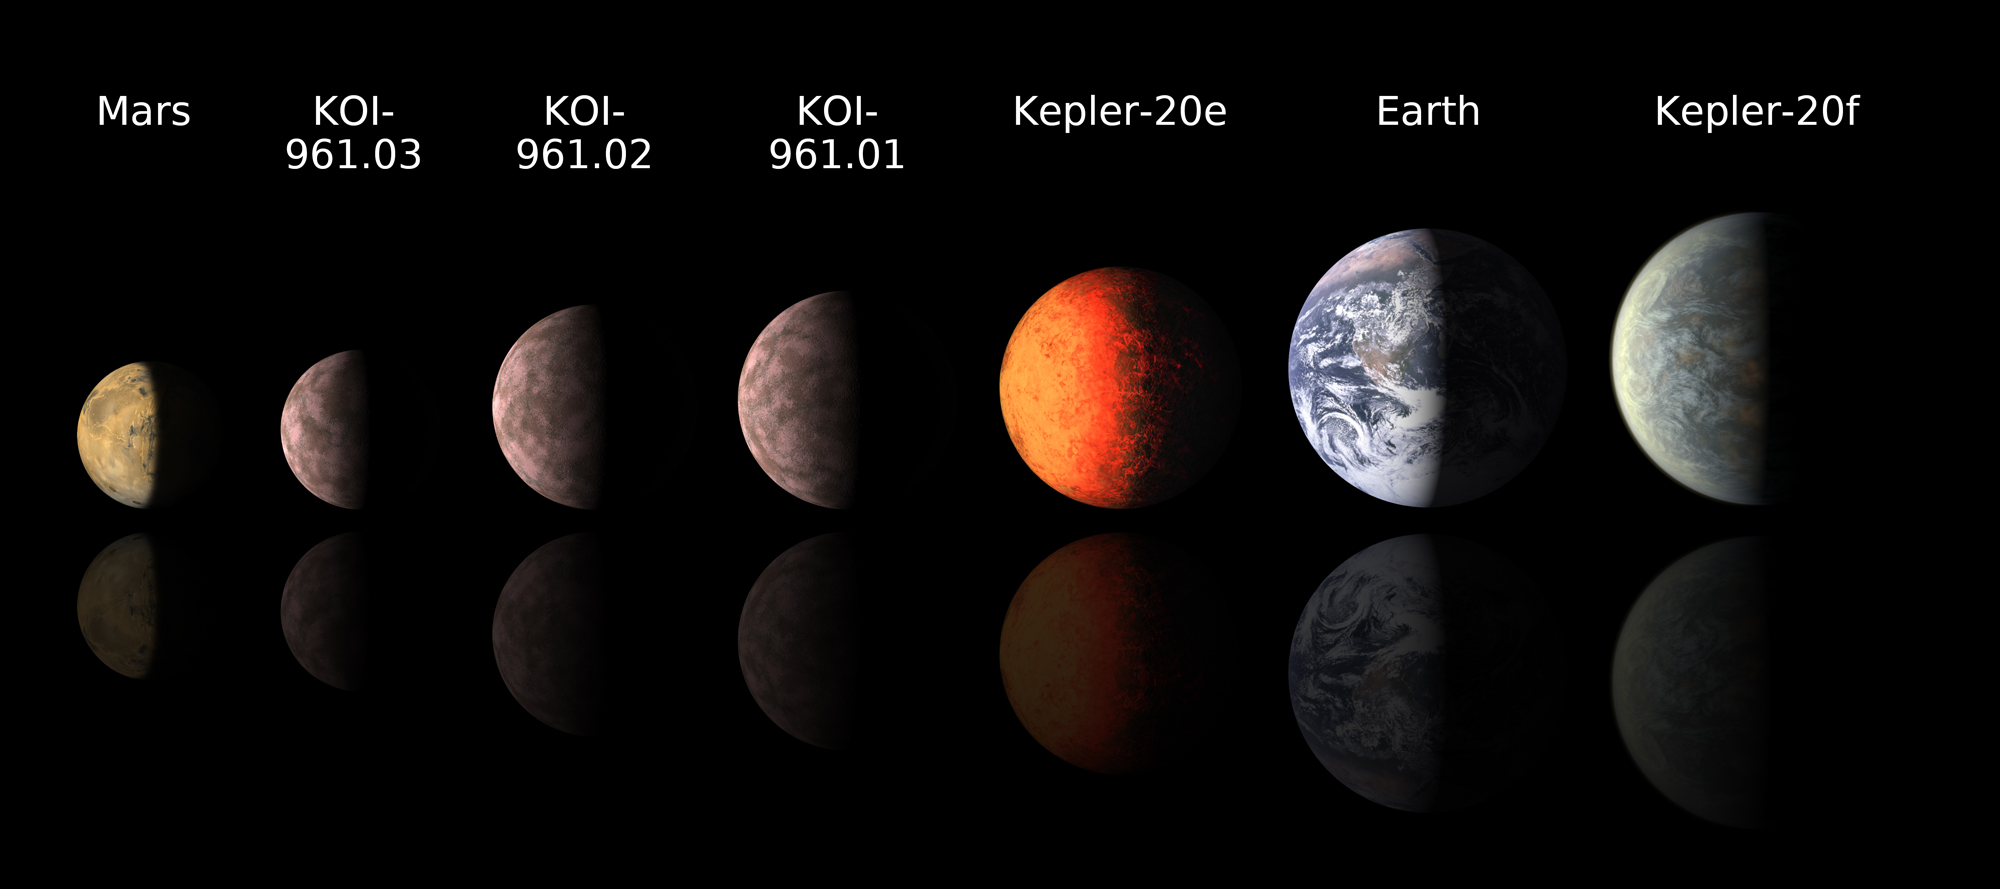 Smallest Alien Planets Comparison